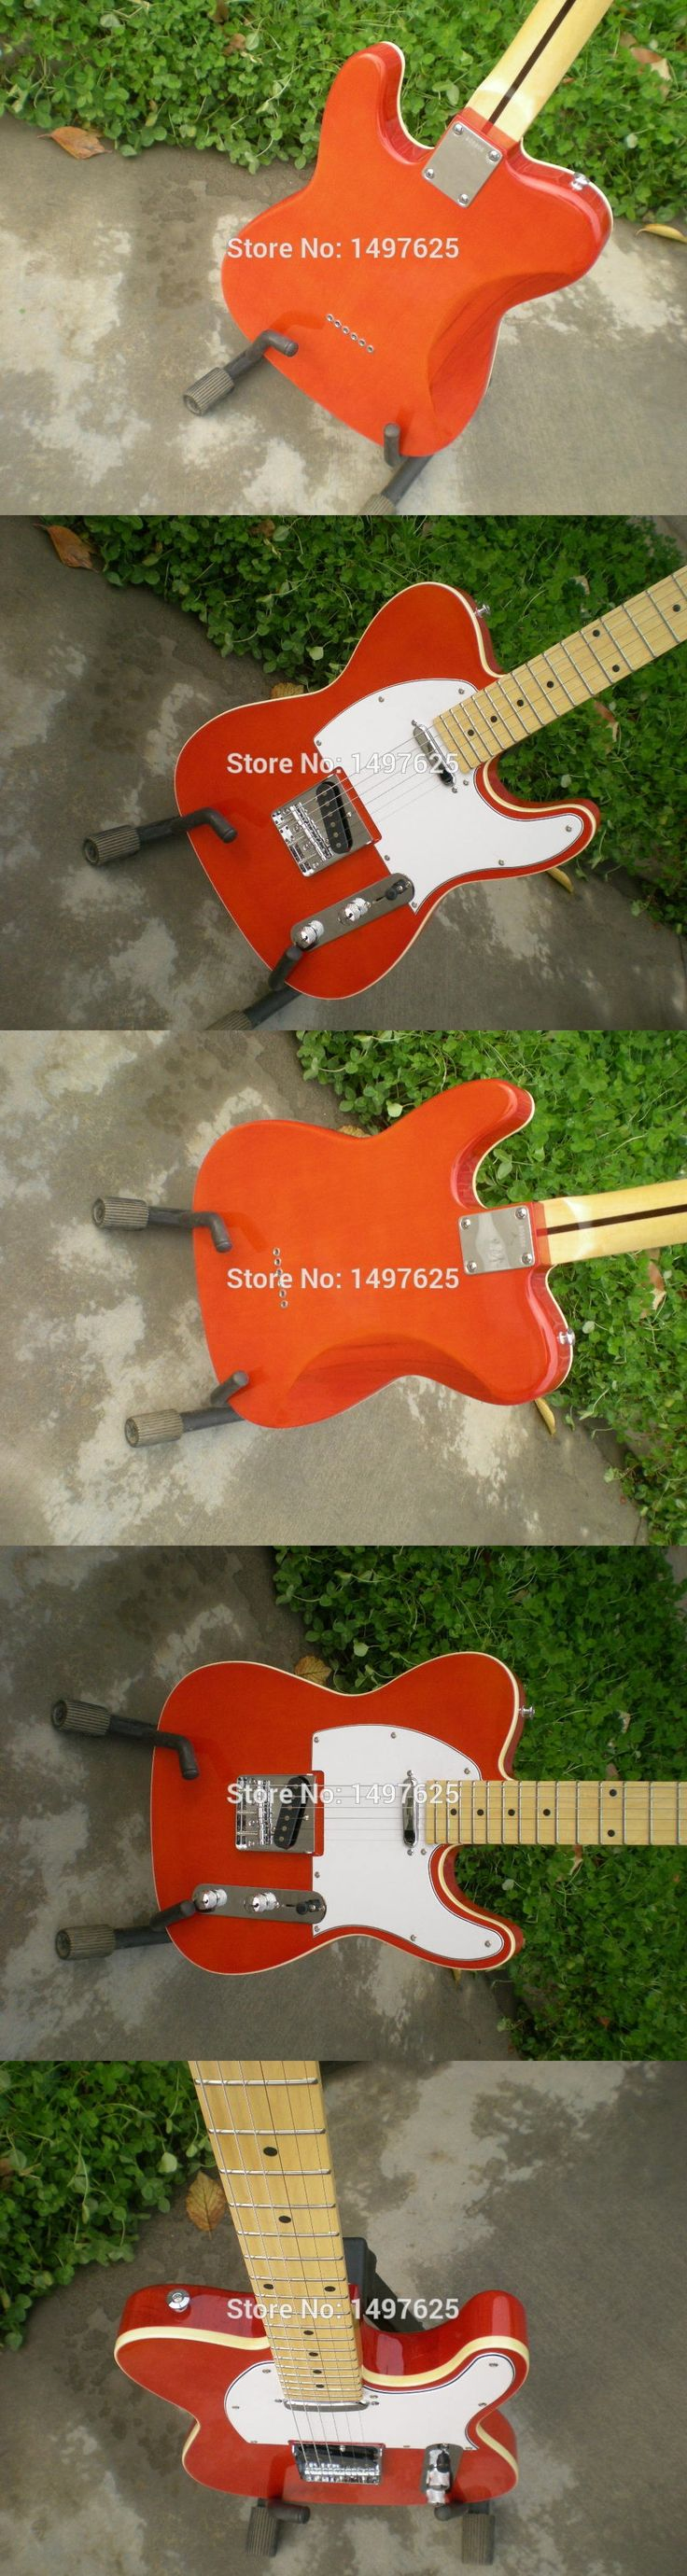 Free shipping Wholesale new tl electric orange color oem guitar guitar in china